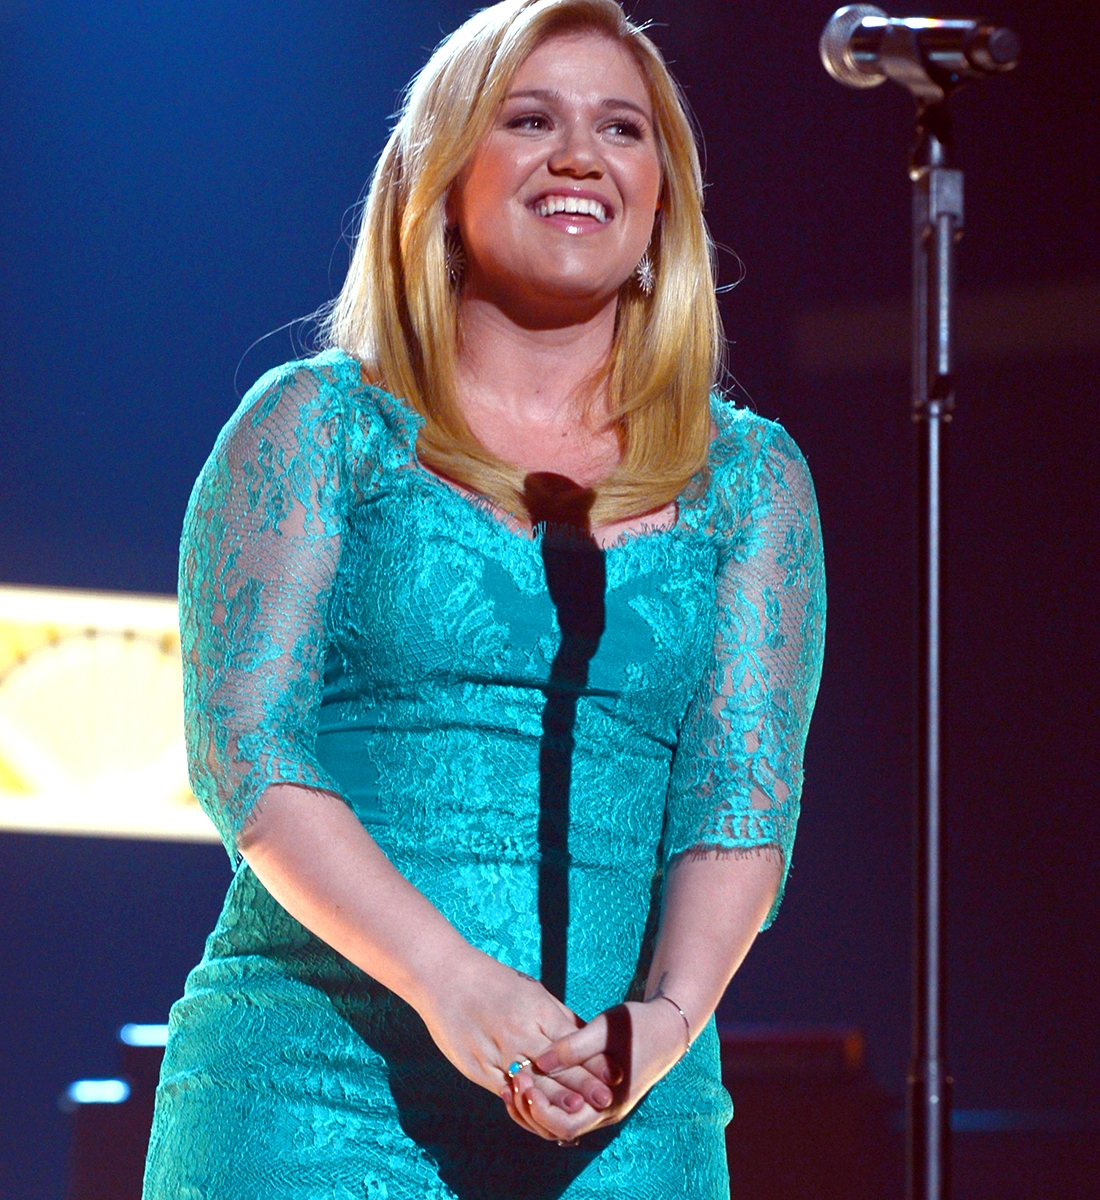 Kelly Clarkson Transformation Gallery: See Pics From 2002 to